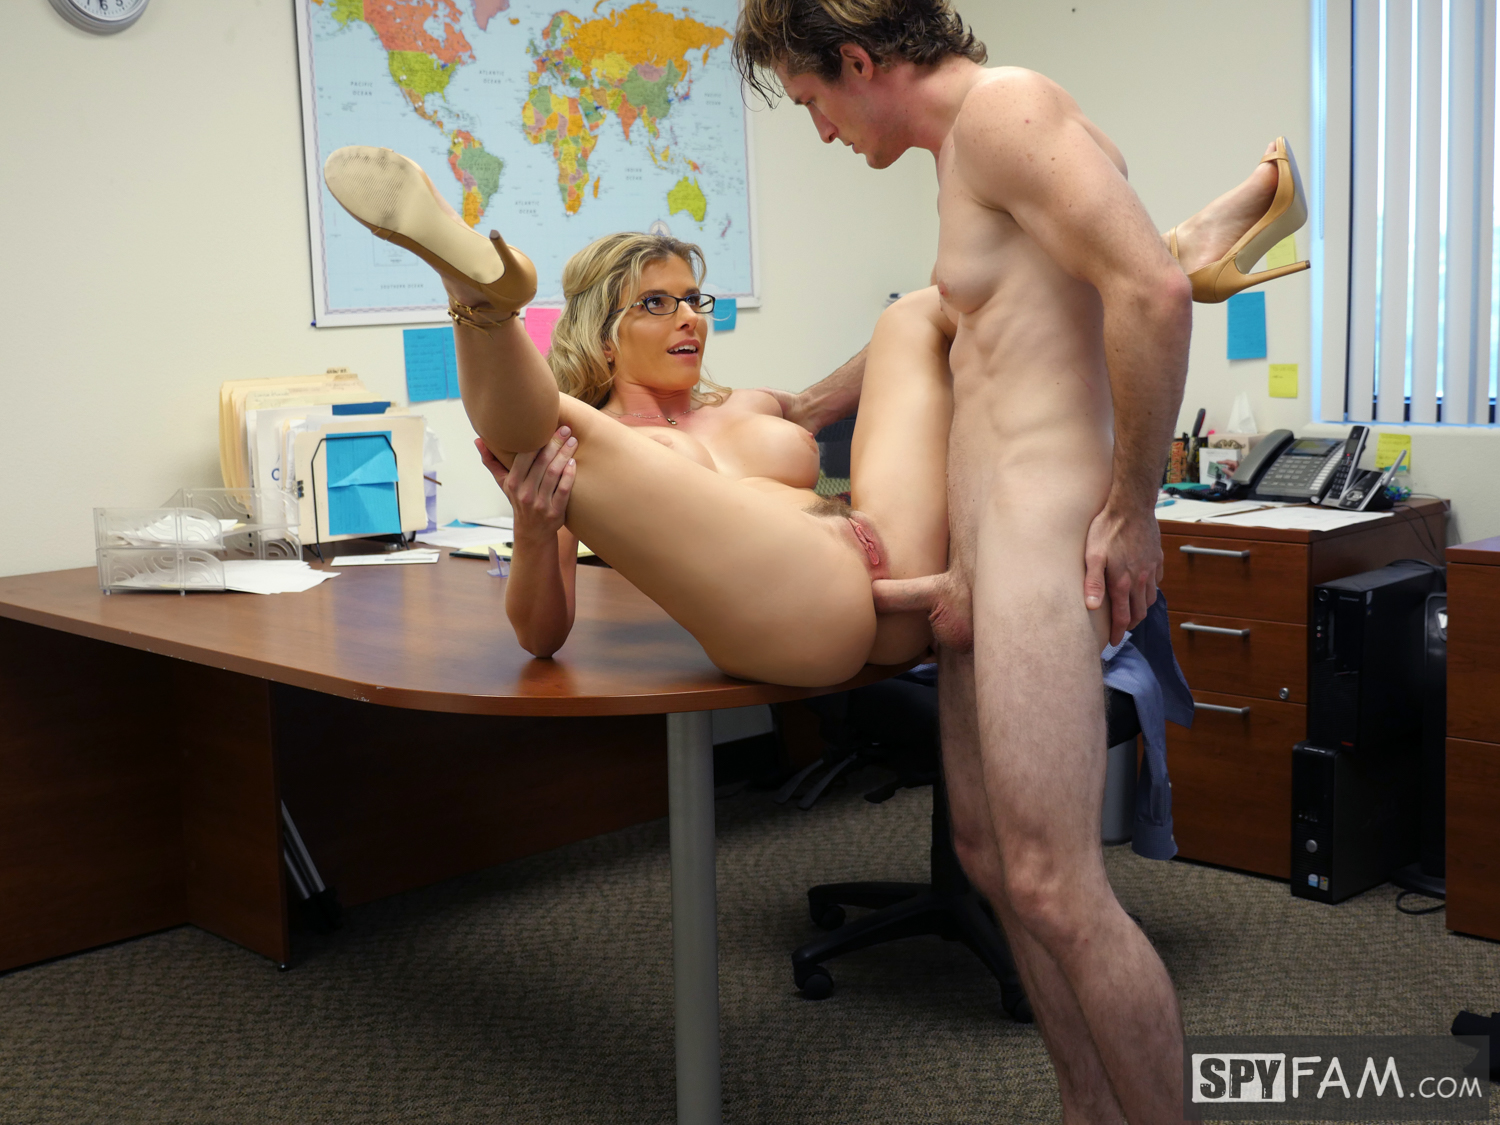 Step mom fucks son bareback and begs for creampie